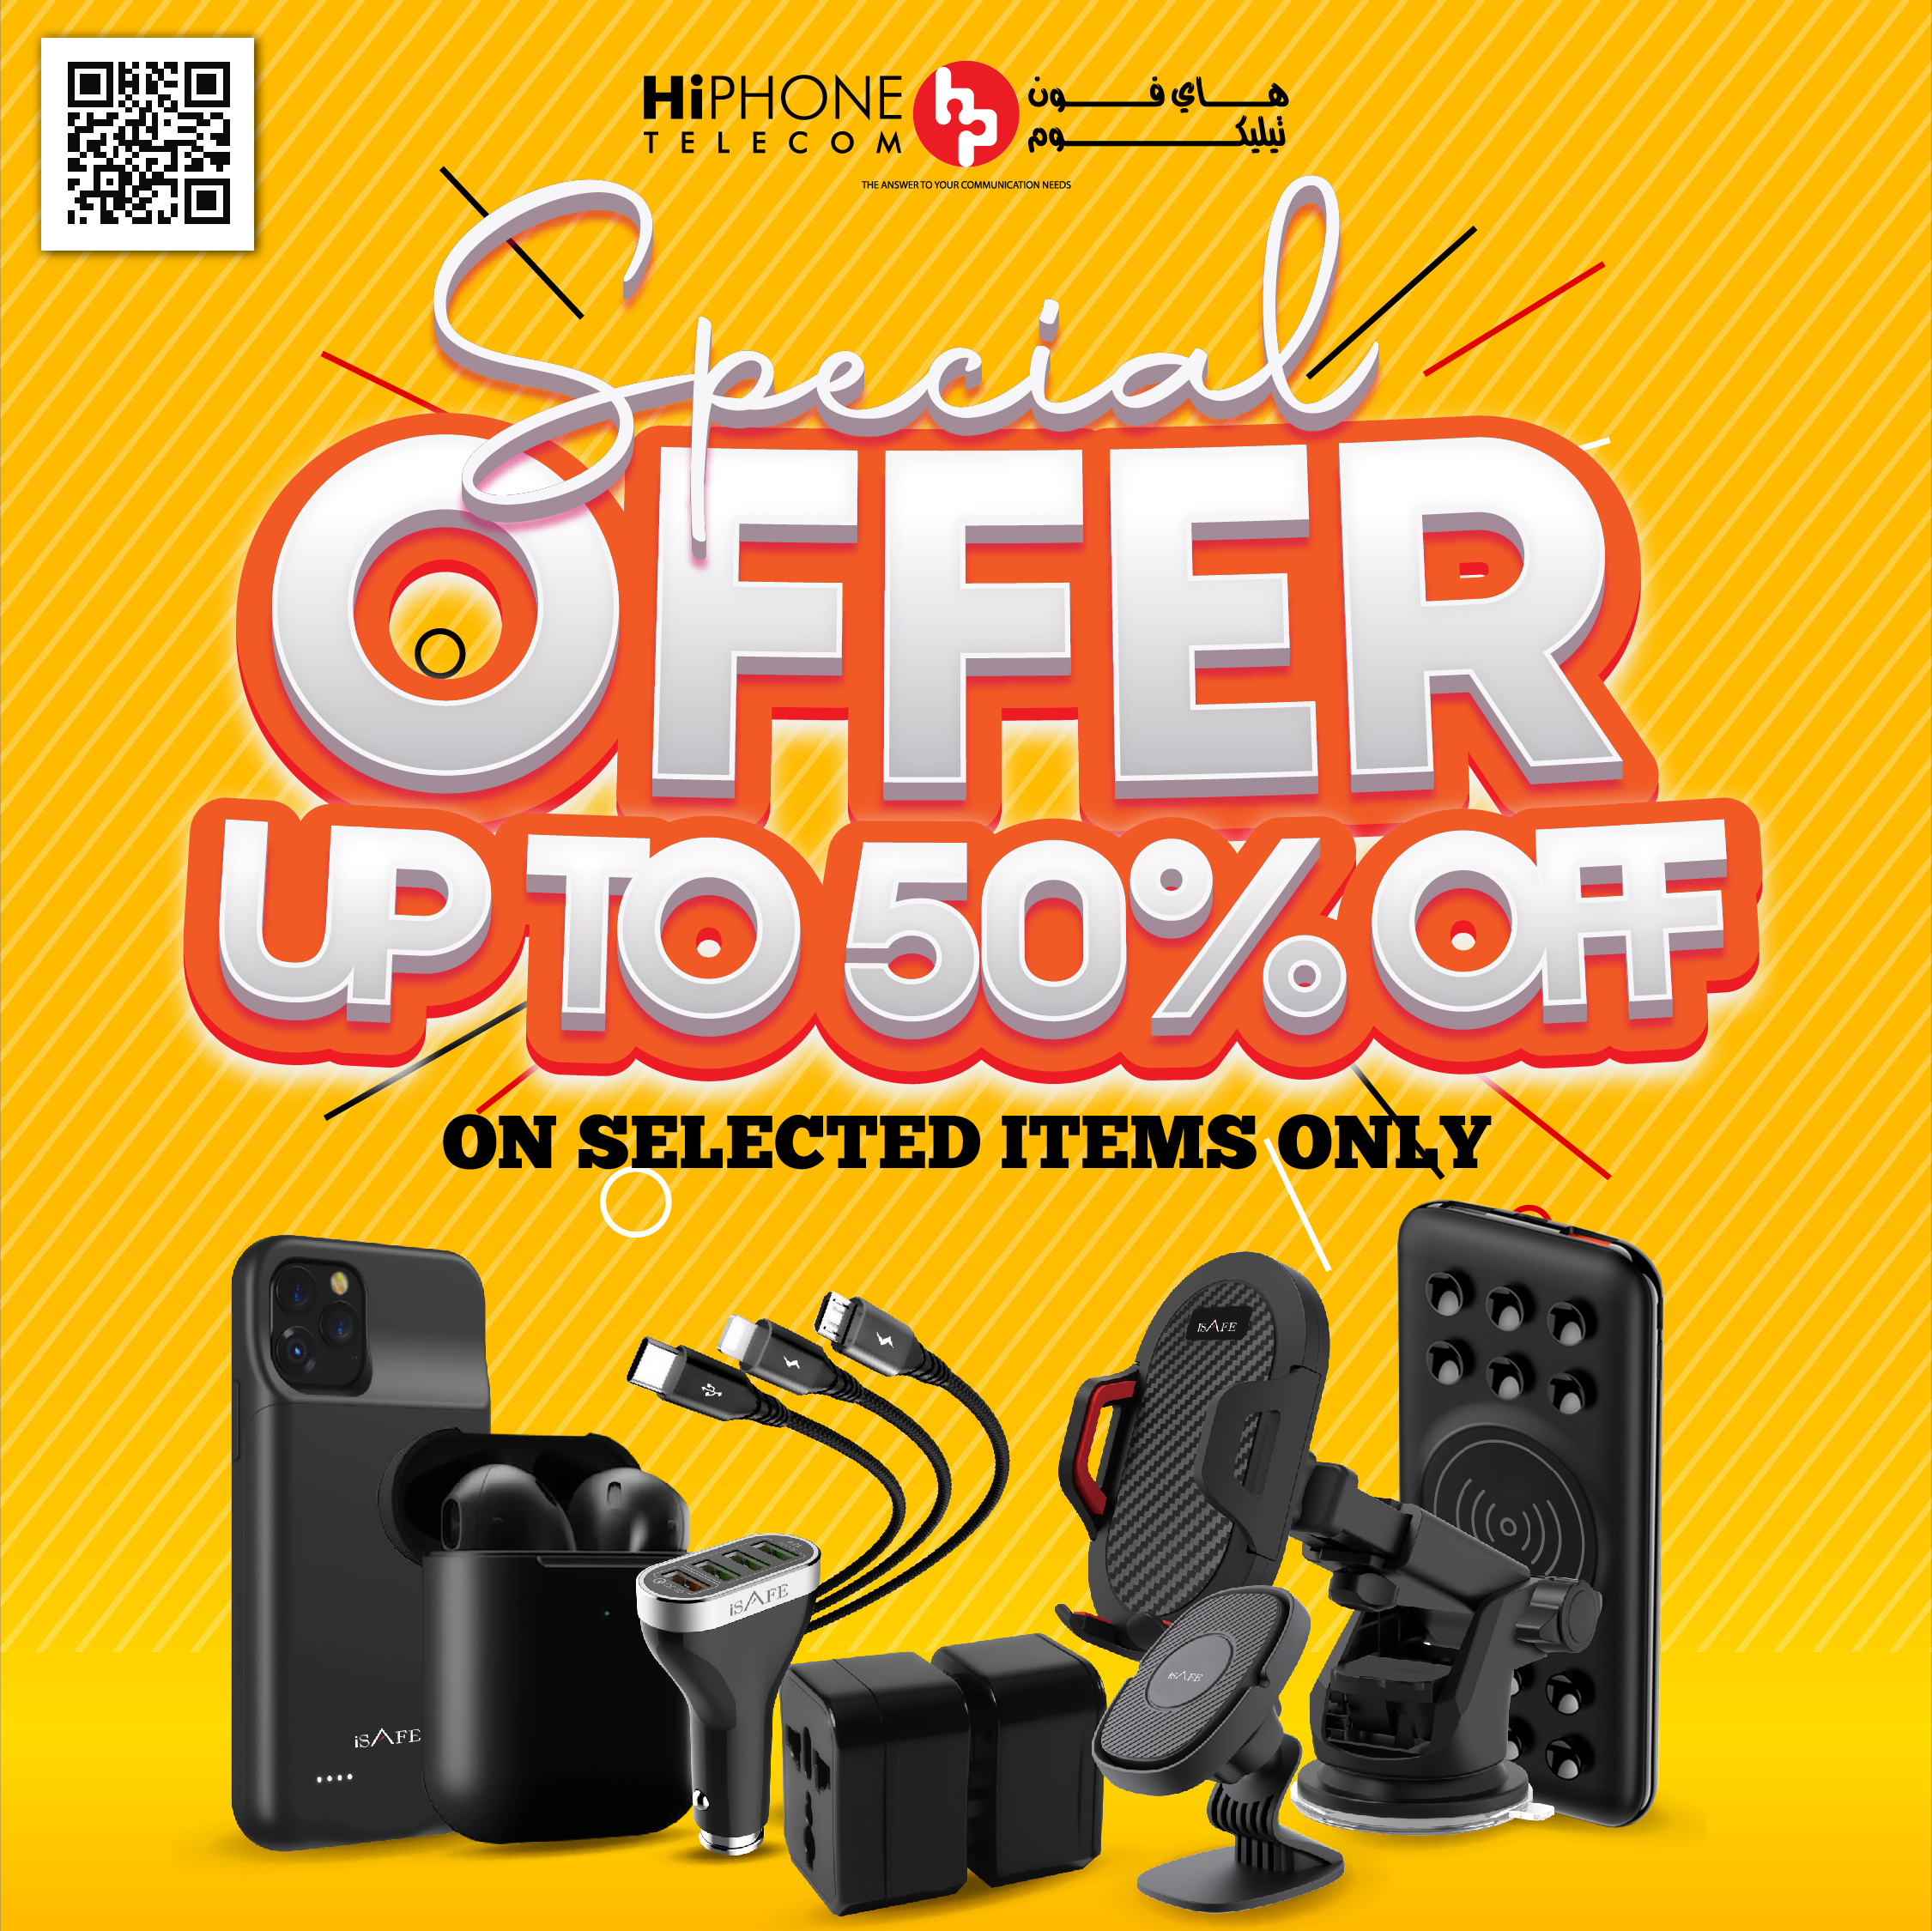 Up to 50% Off at HiPhone Telecom